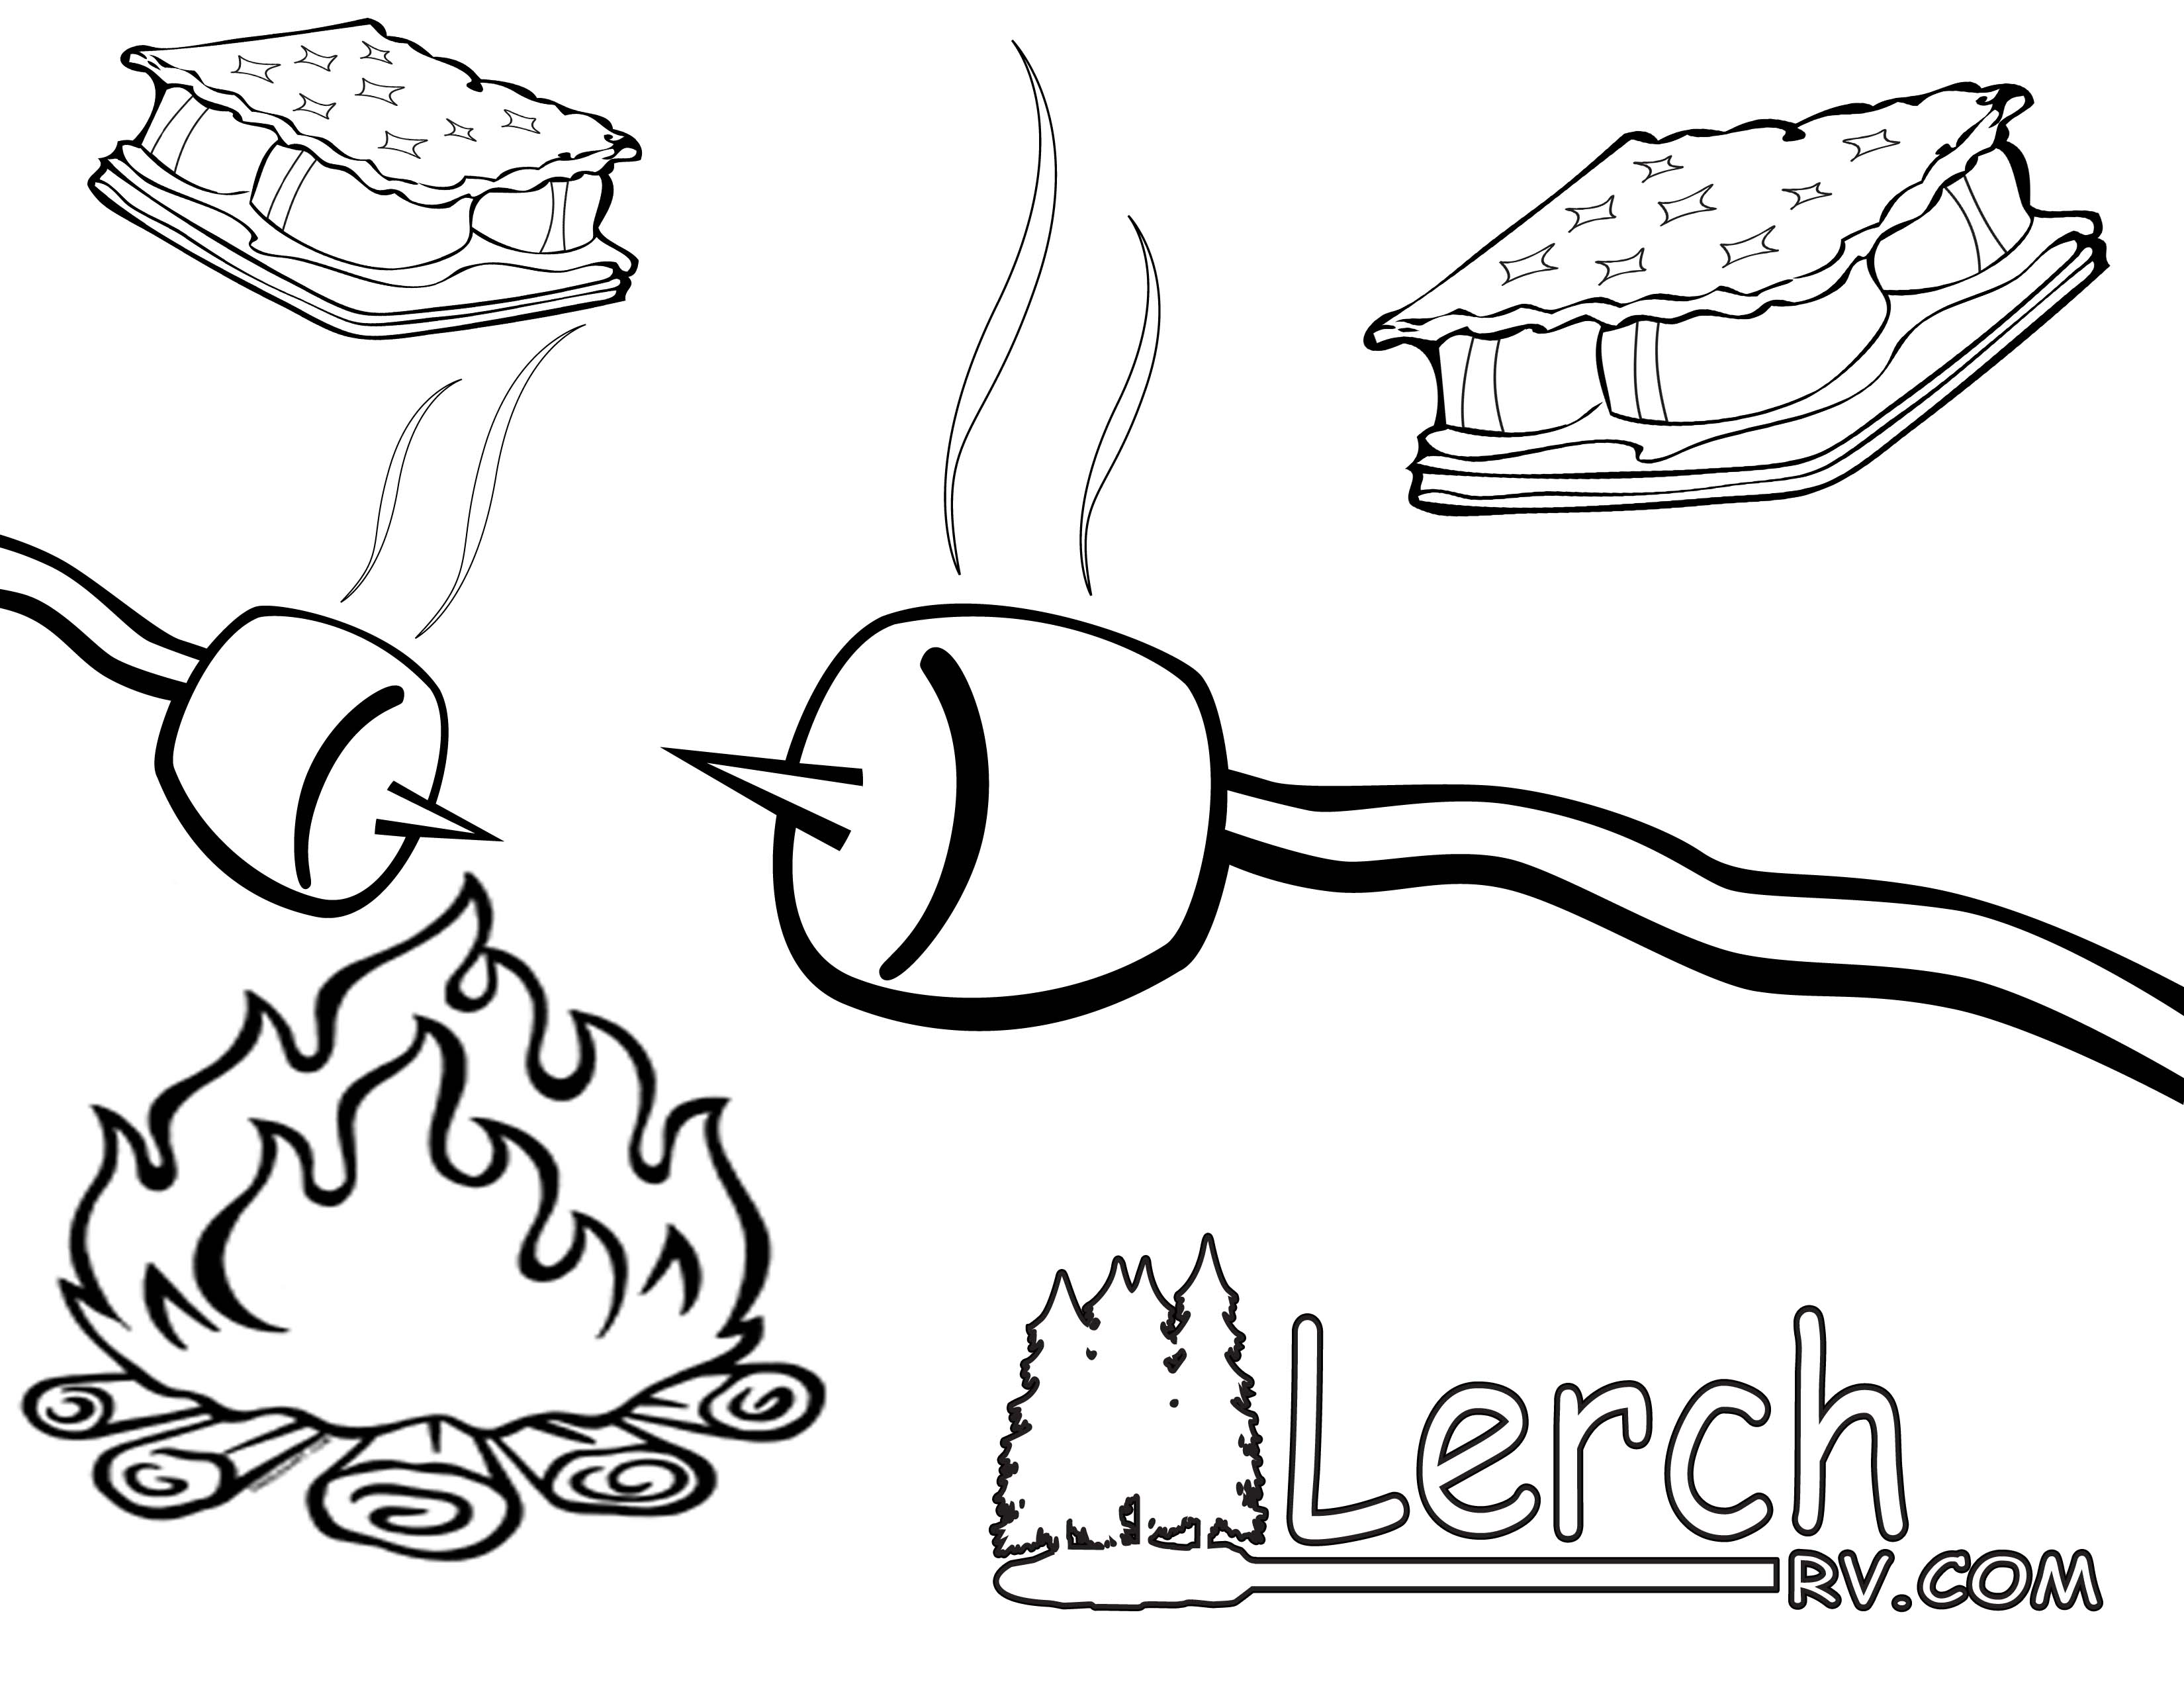 smores coloring pages smores clip art camping coloring pages coloring pages smores pages coloring